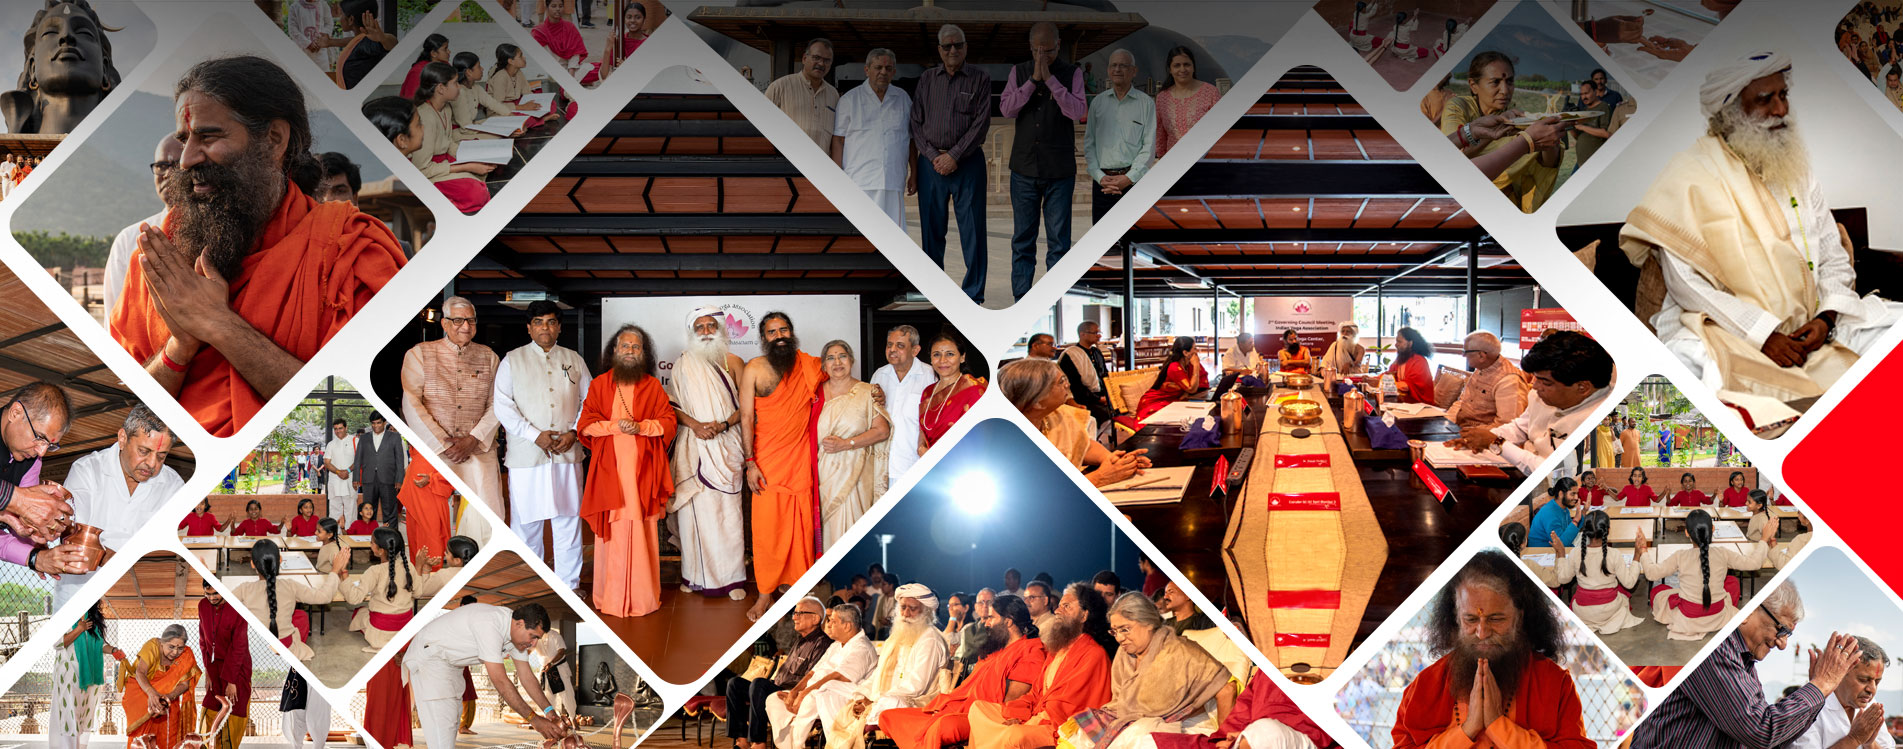 GC-Meeting-collage-banner